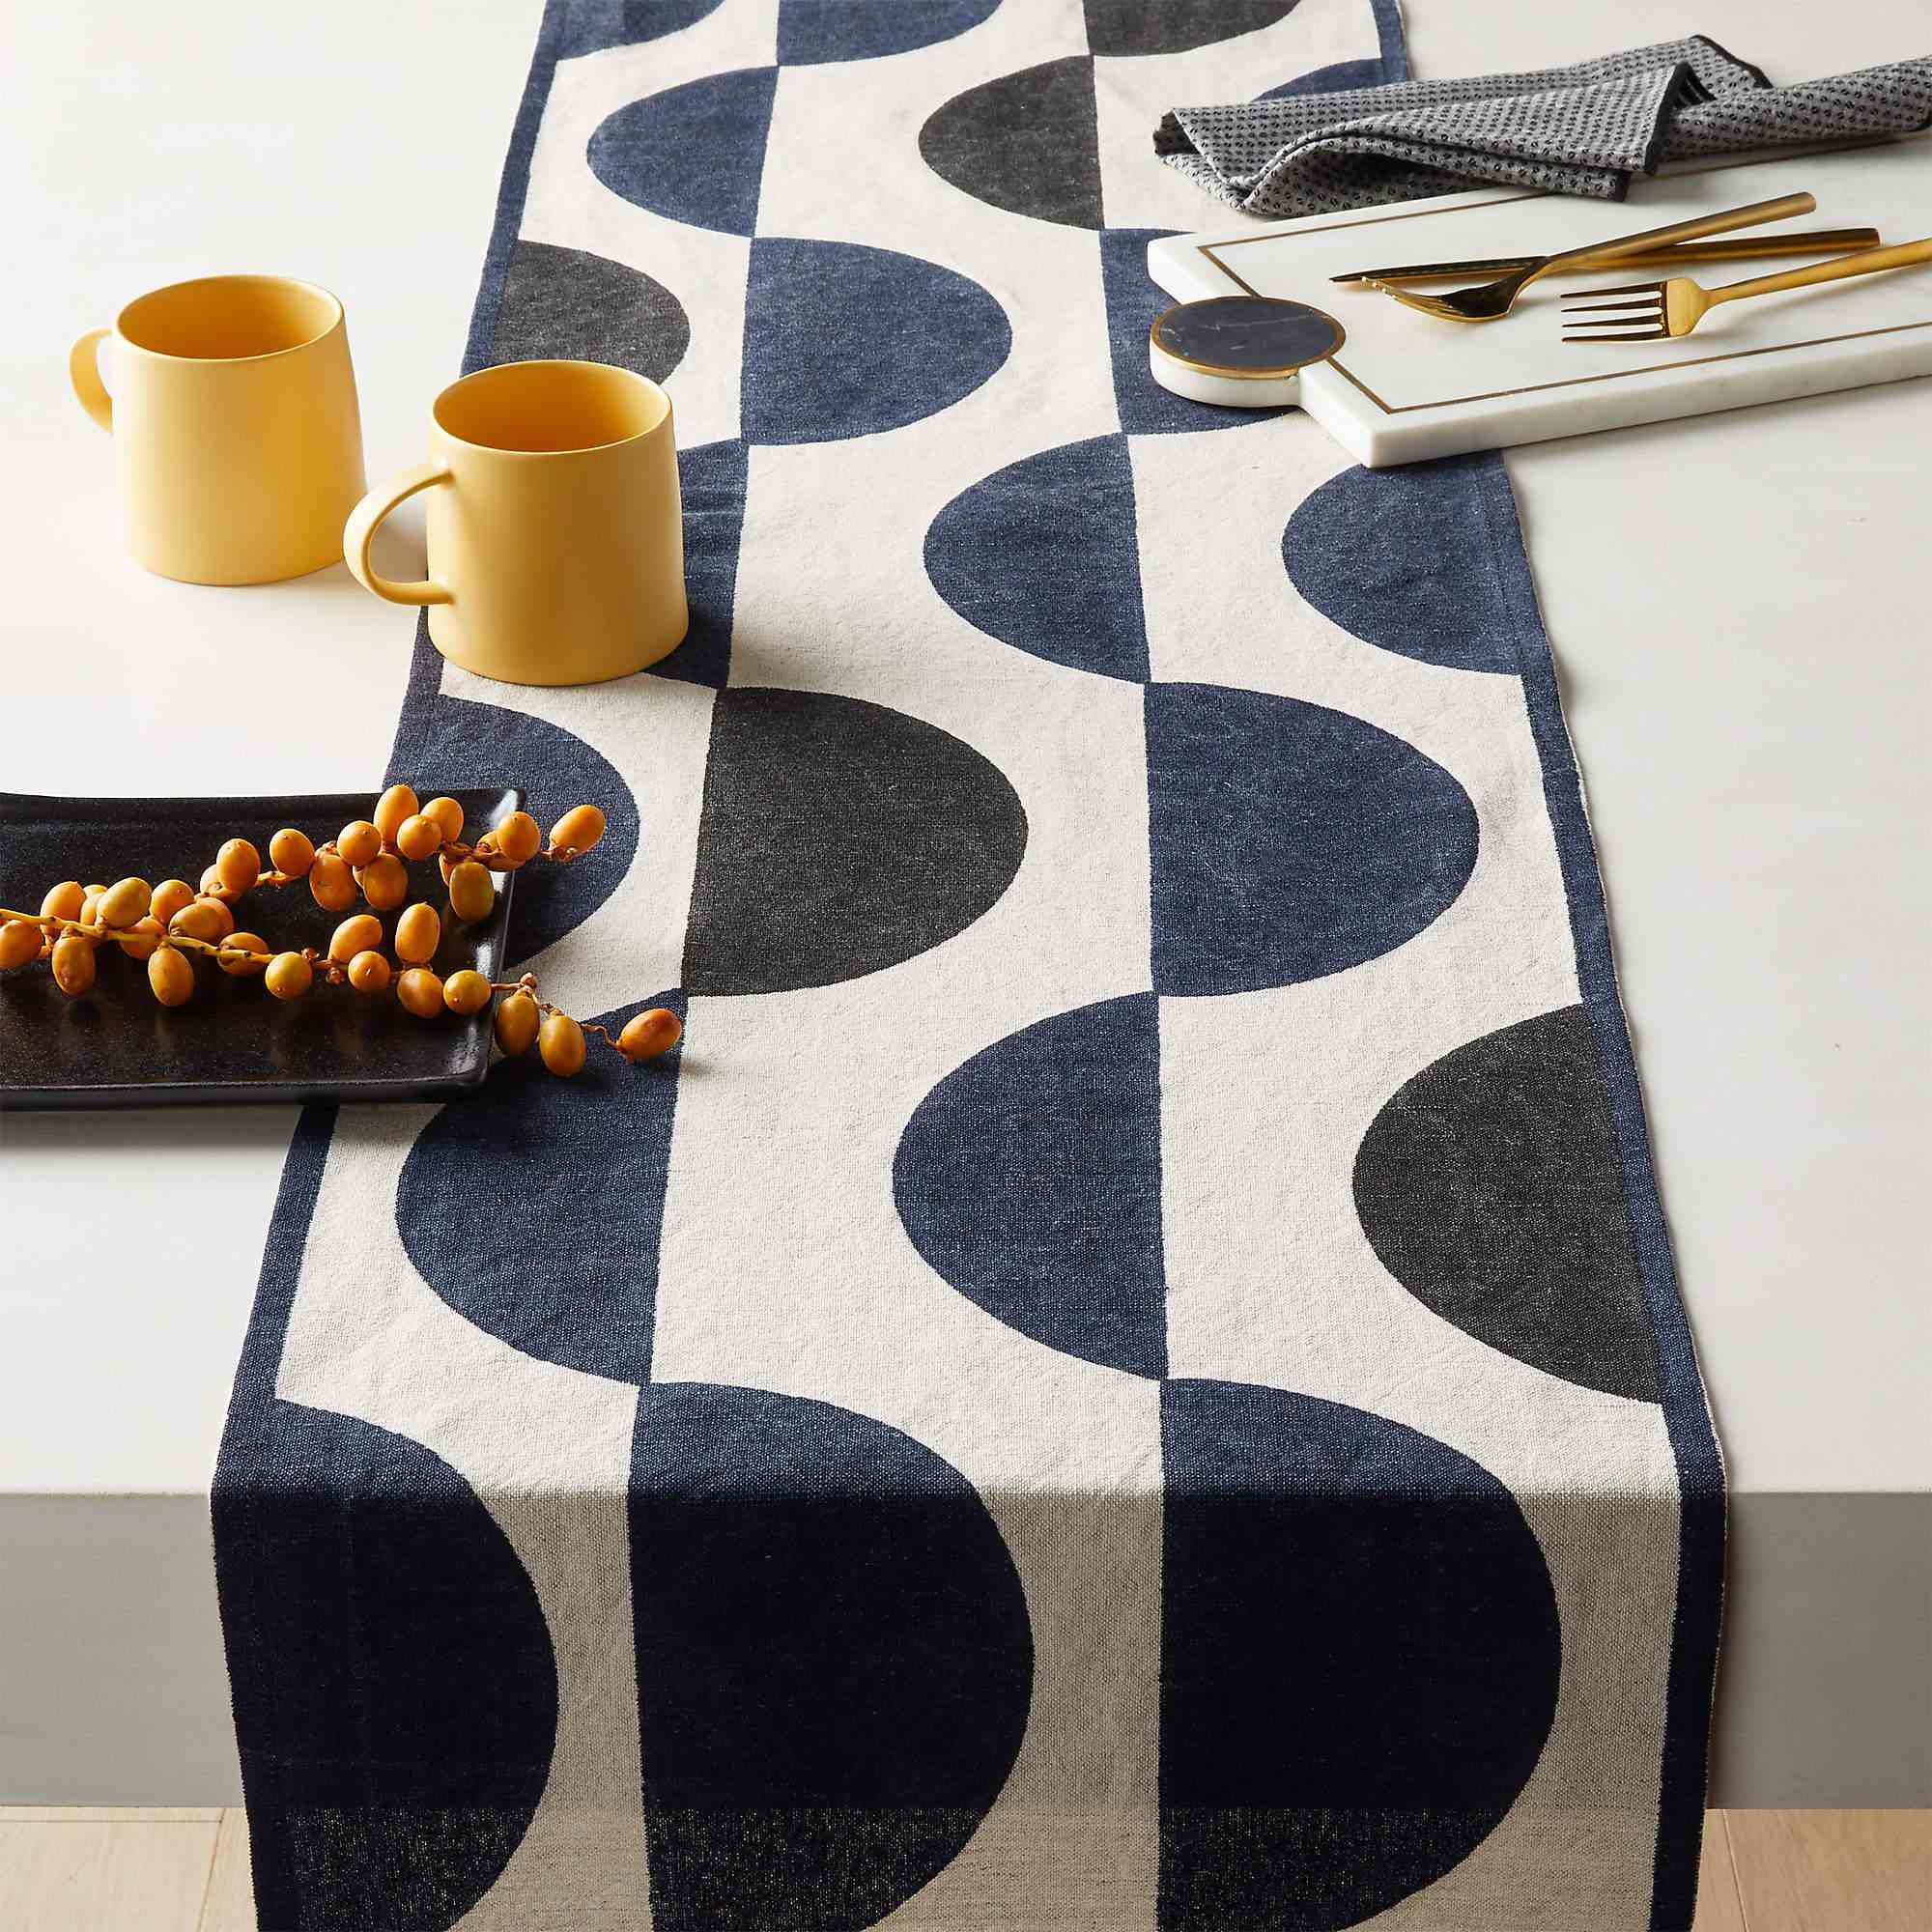 A bold table runner, currently for sale at CB2